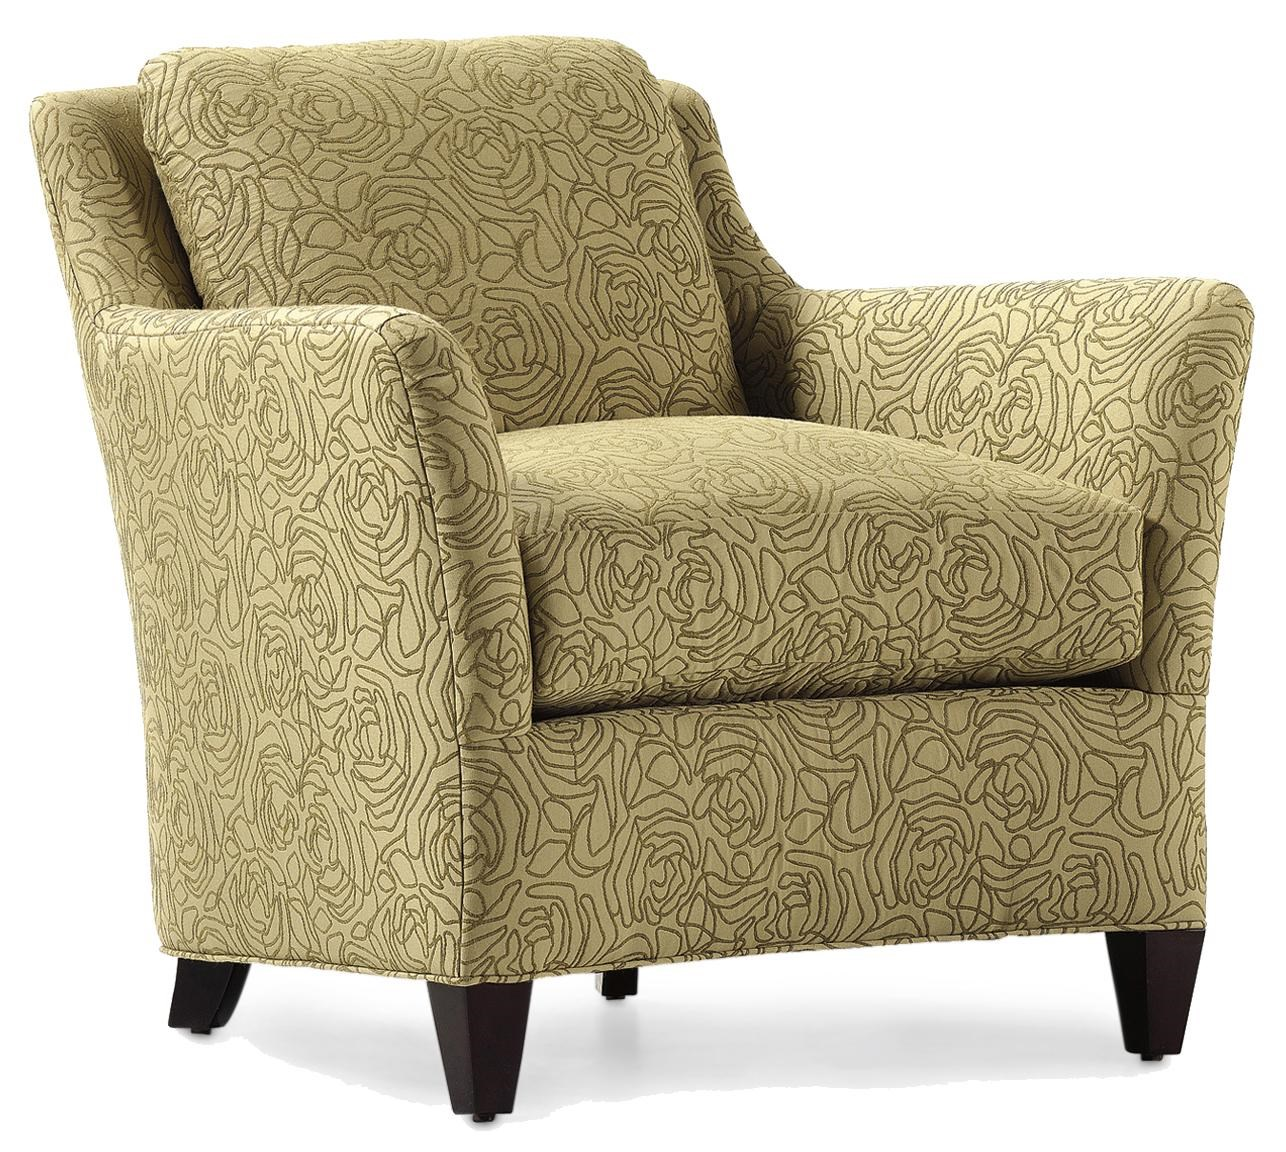 Jessica Charles Fine Upholstered Accents Grayson Upholstered Chair - Sprintz Furniture ...